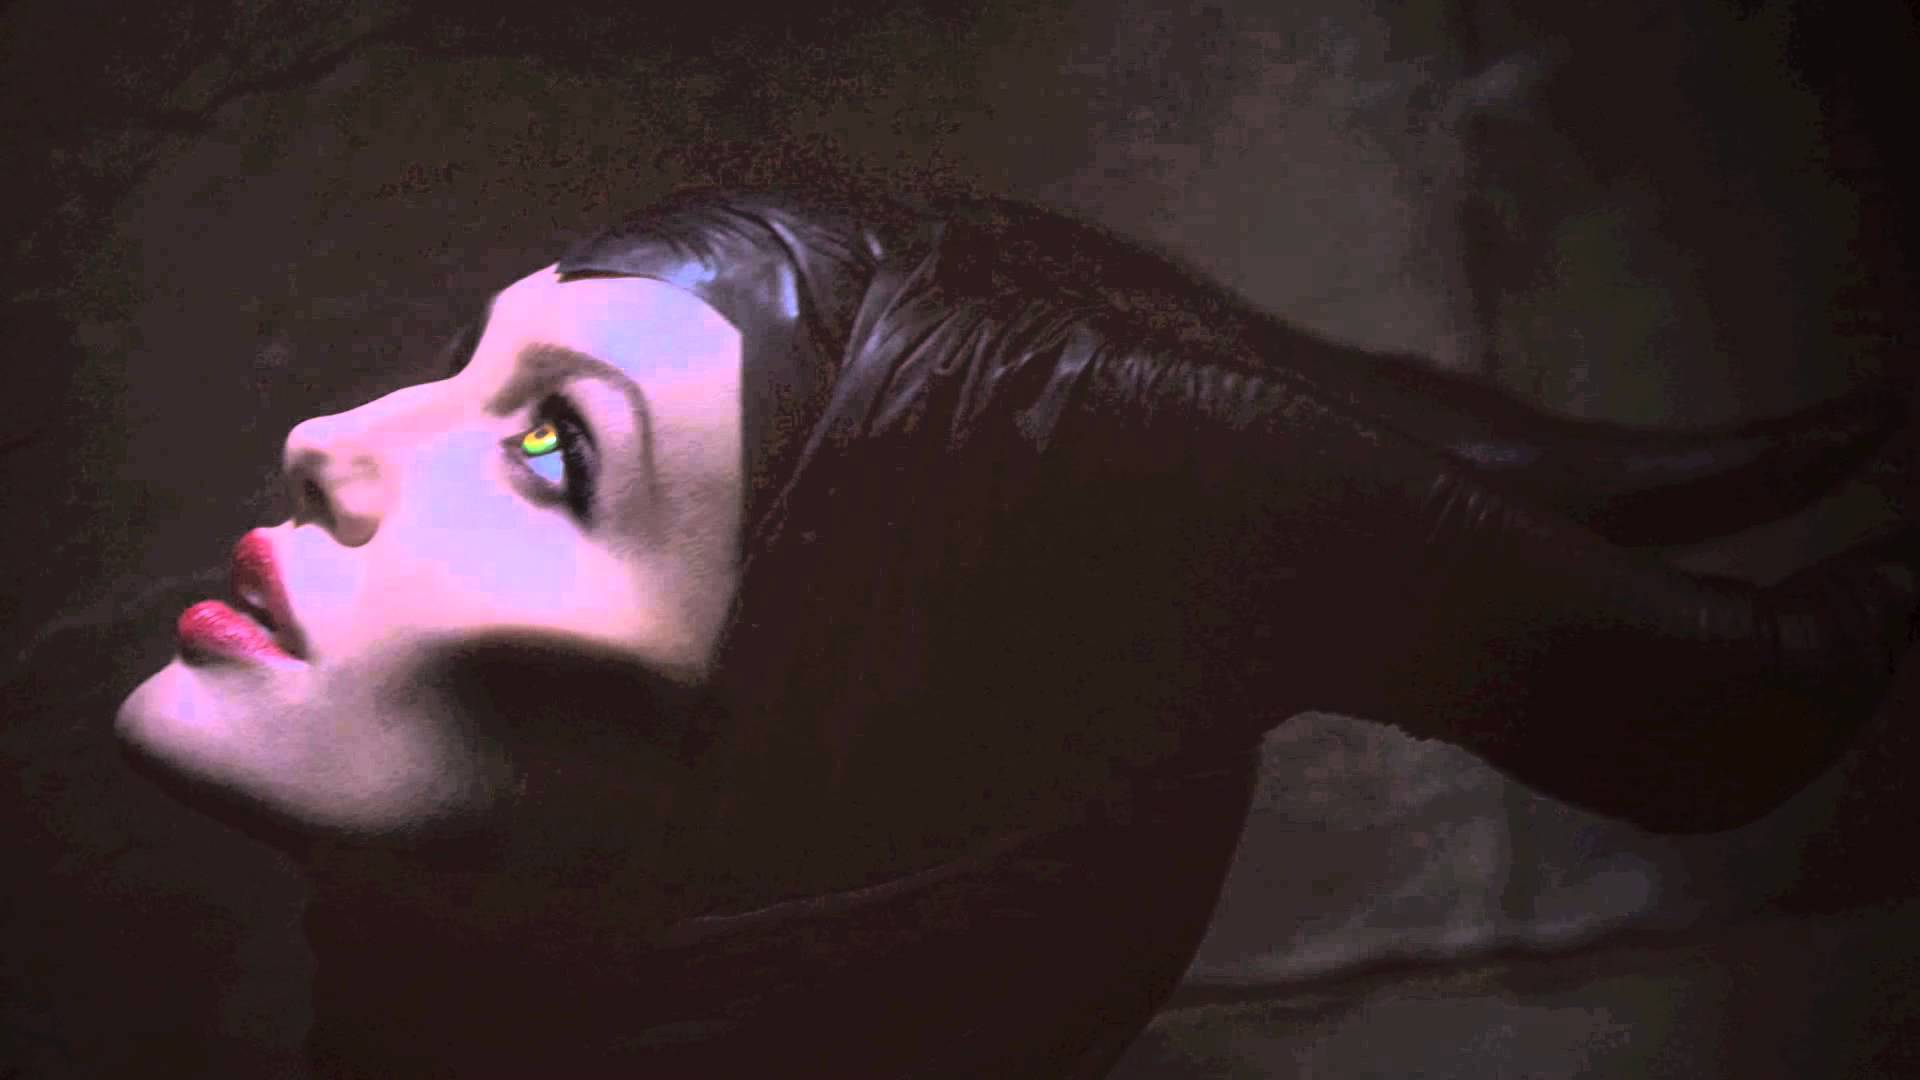 Agelina Jolie Maleficent Disney Sleeping Beauty Šípková Růženka